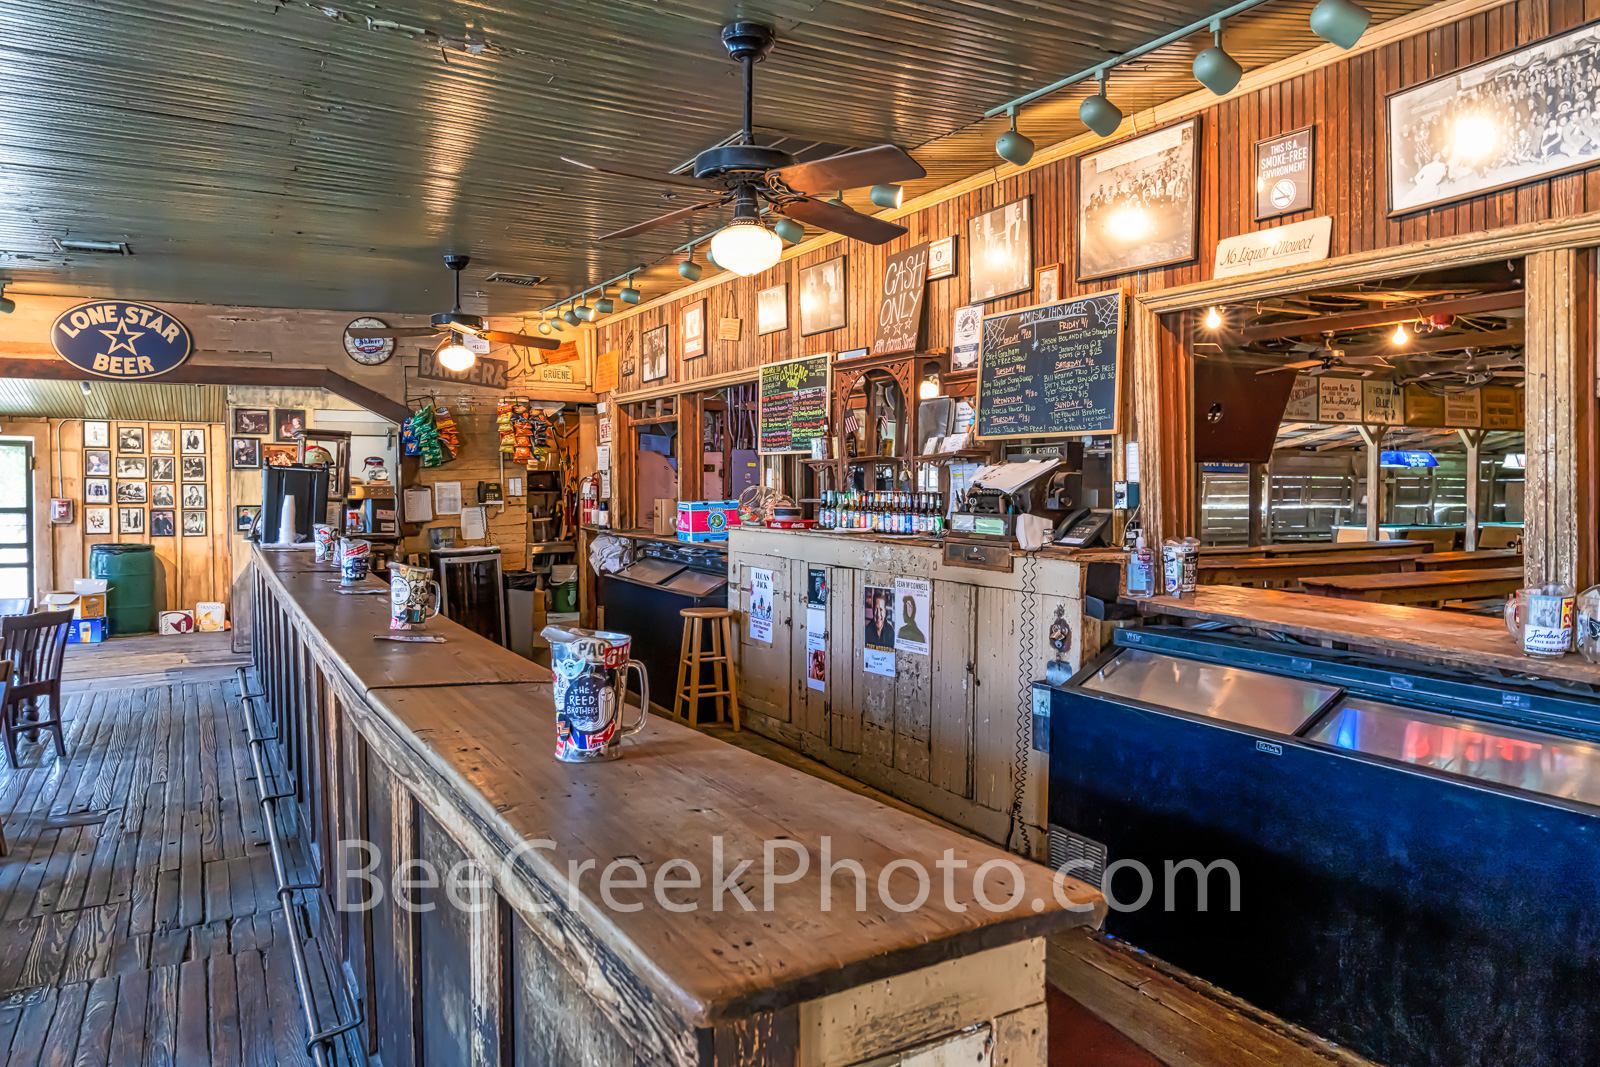 Gruene Hall, gruene saloon, Gruene Texas, dance hall, saloon, bar, town, community, Earnest Gruene, german, german town, Texas, texas hill country, visit, National Register of Historic Places,, photo